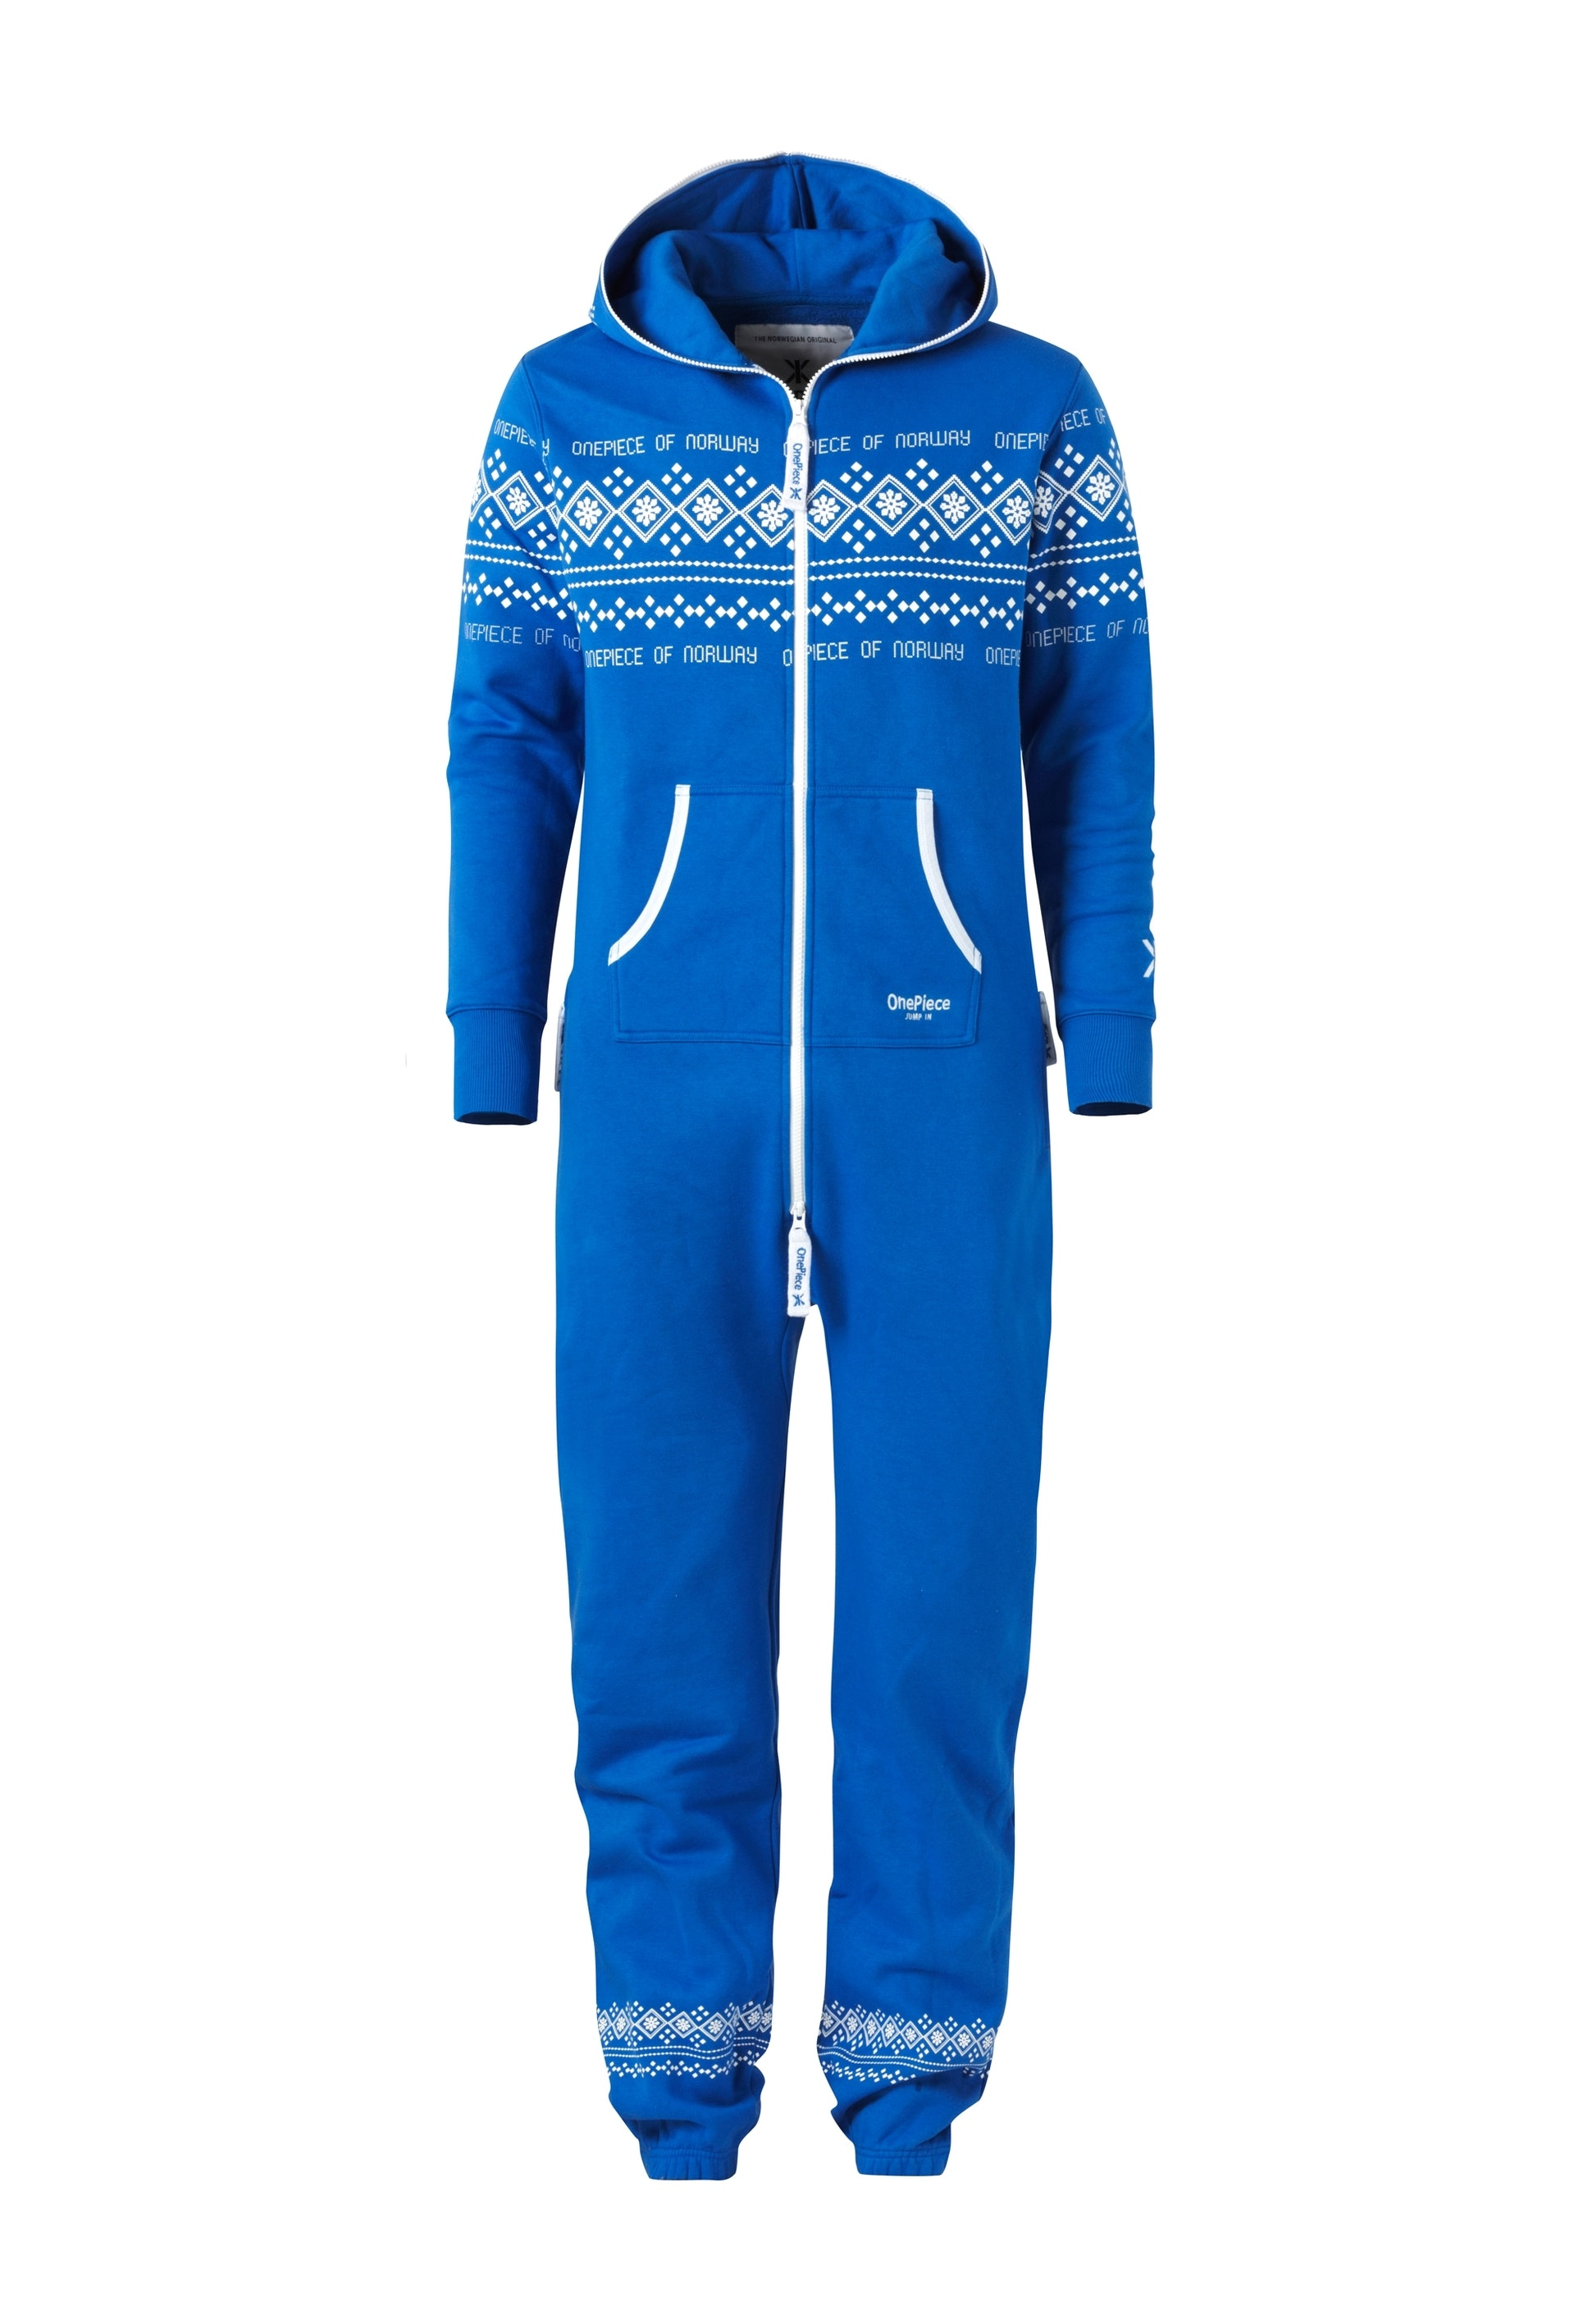 Find great deals on eBay for blue onesie pajamas. Shop with confidence.